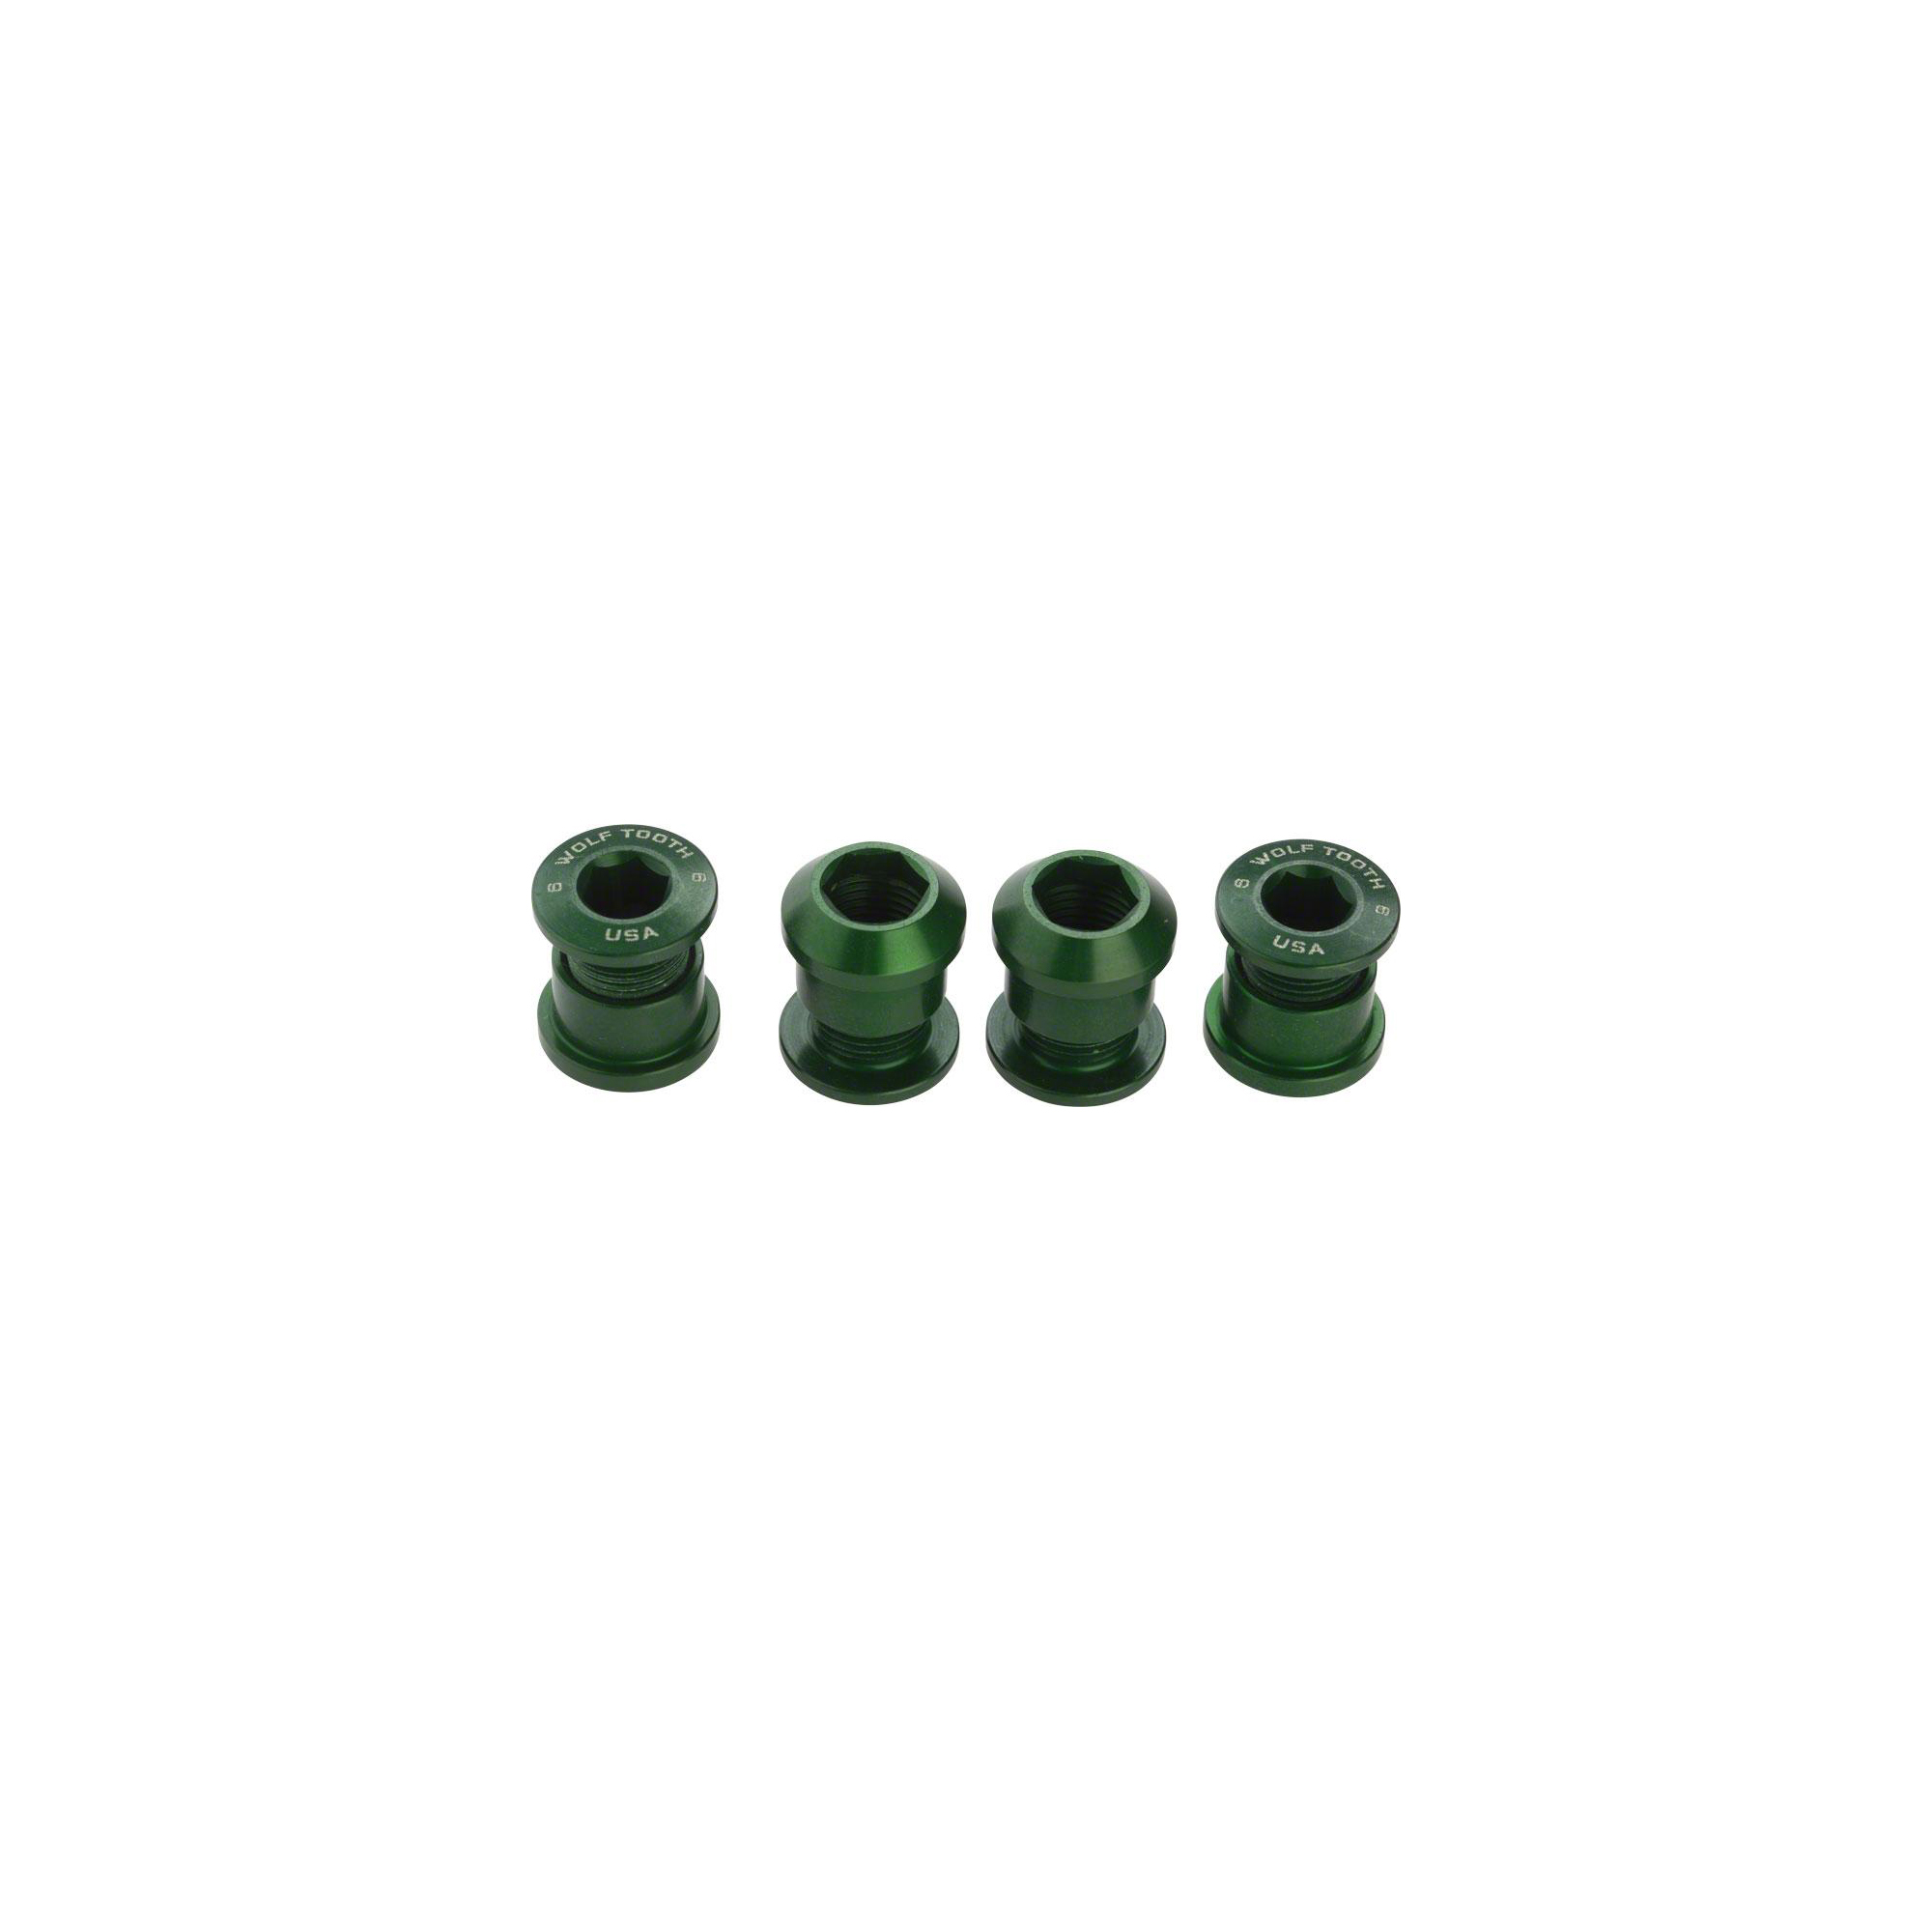 Wolf Tooth Set of 4 Chainring Bolts for 1x use Dual Hex Fittings Black